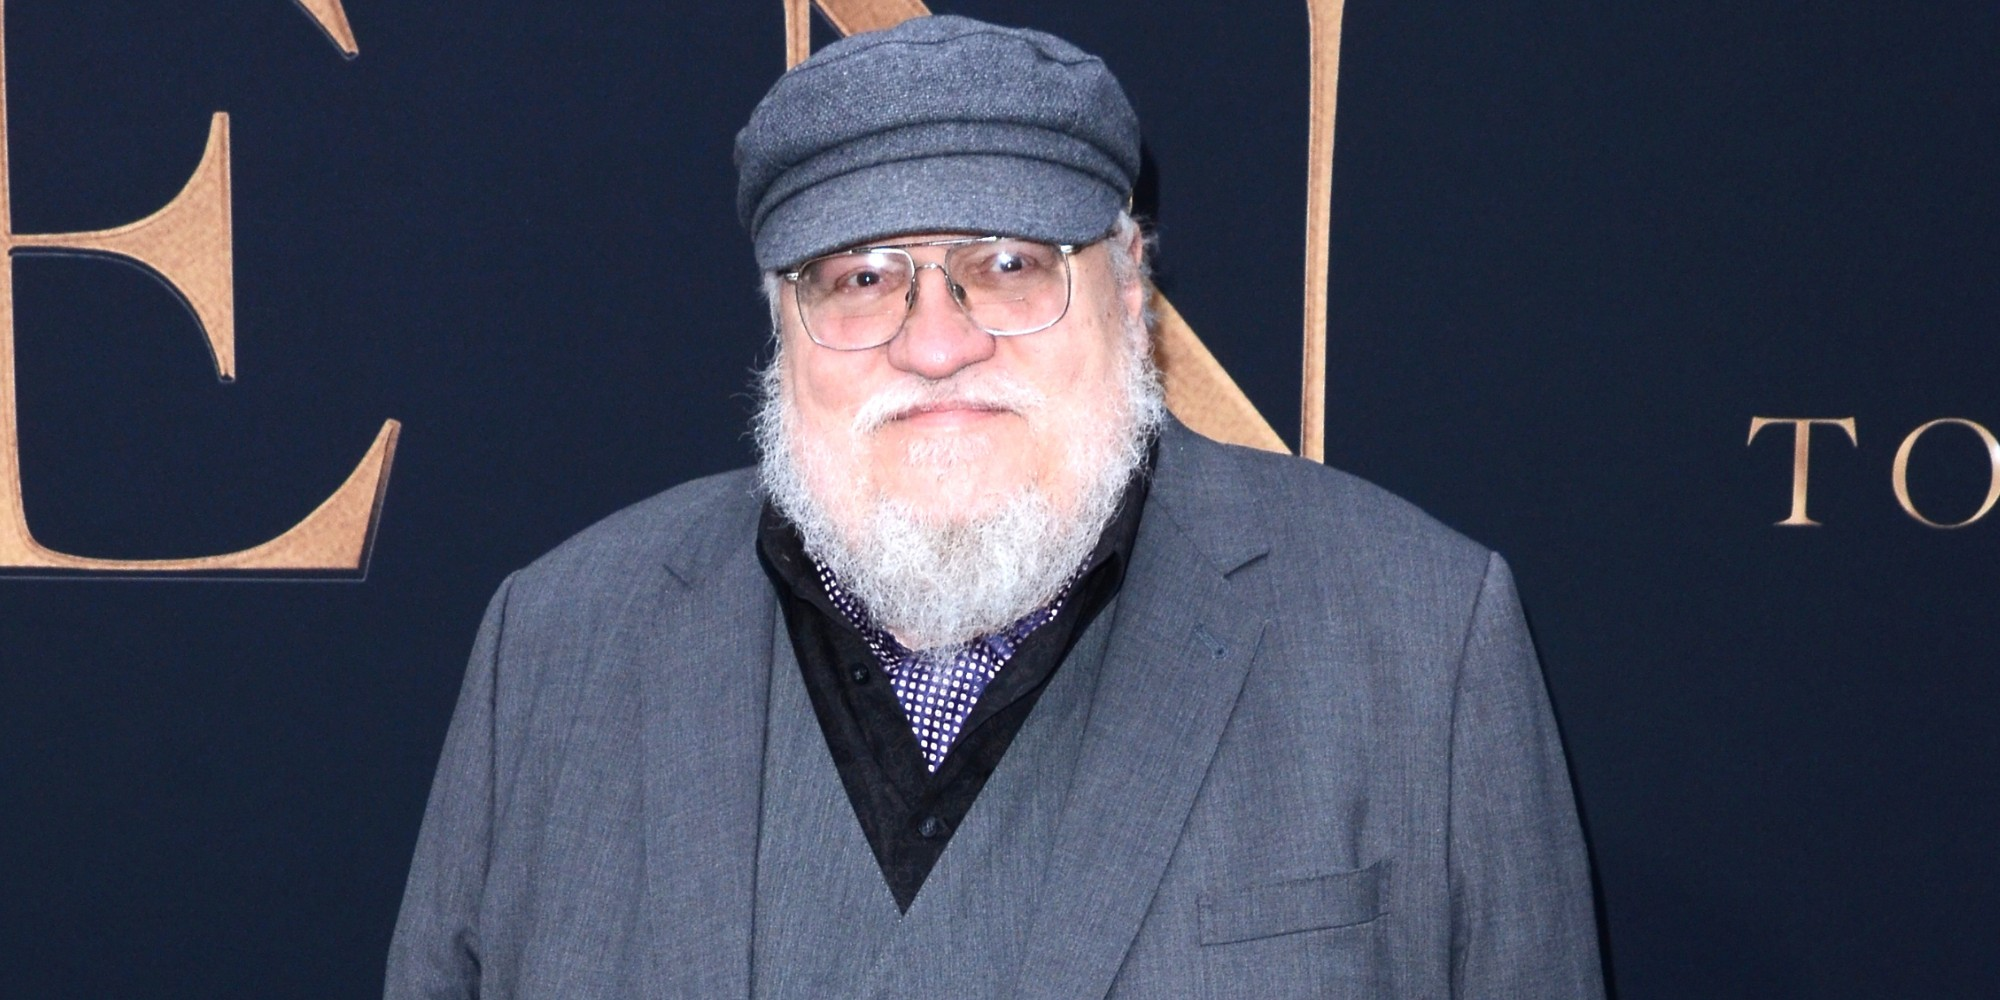 George RR Martin on How he is writing the Next Book in ASOIAF Series